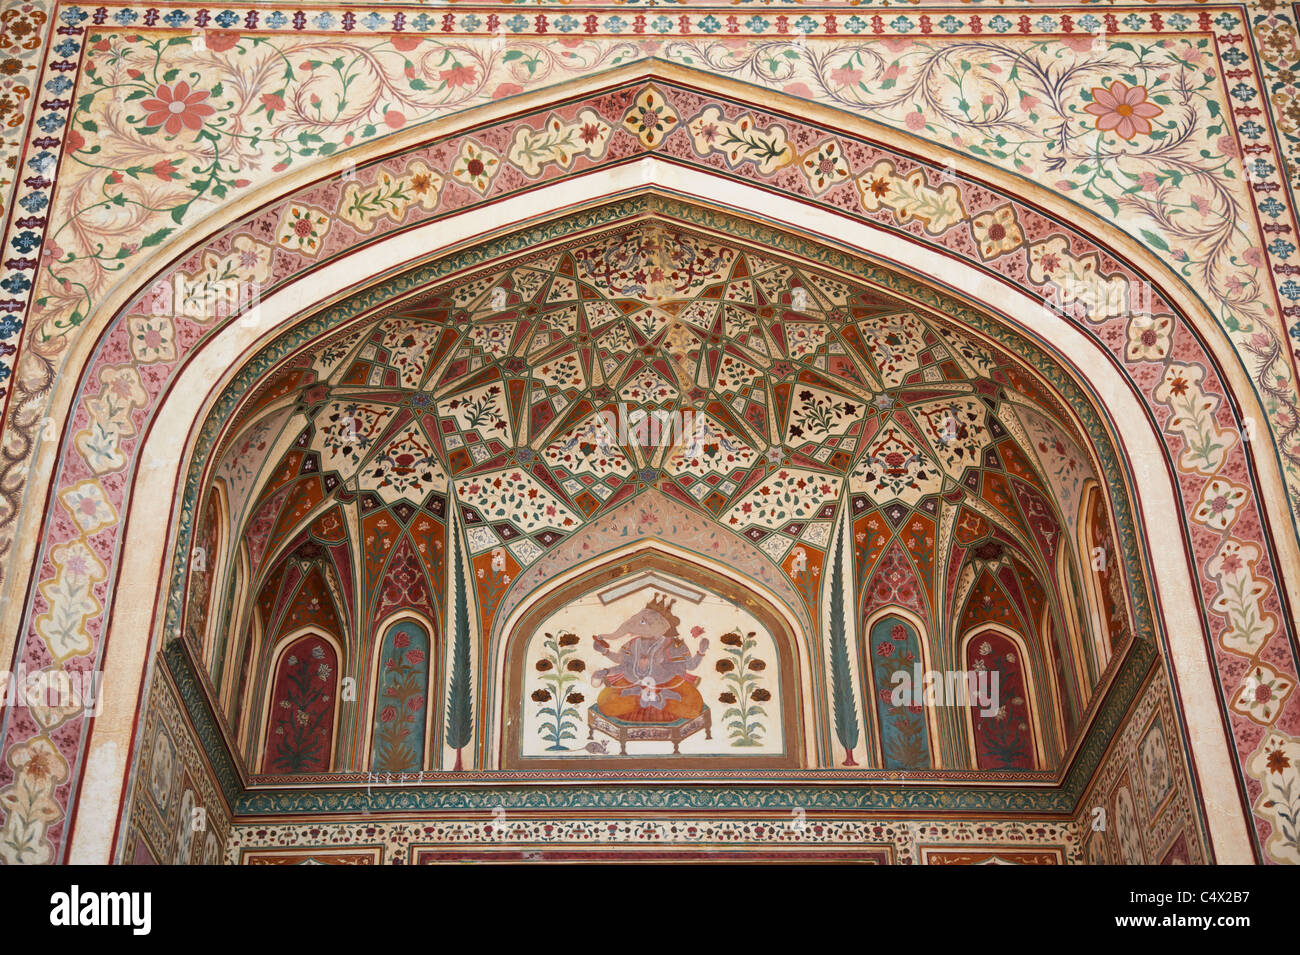 Ganesh Pol (Ganesh Gate) in Amber Fort, Jaipur, Rajasthan, India - Stock Image